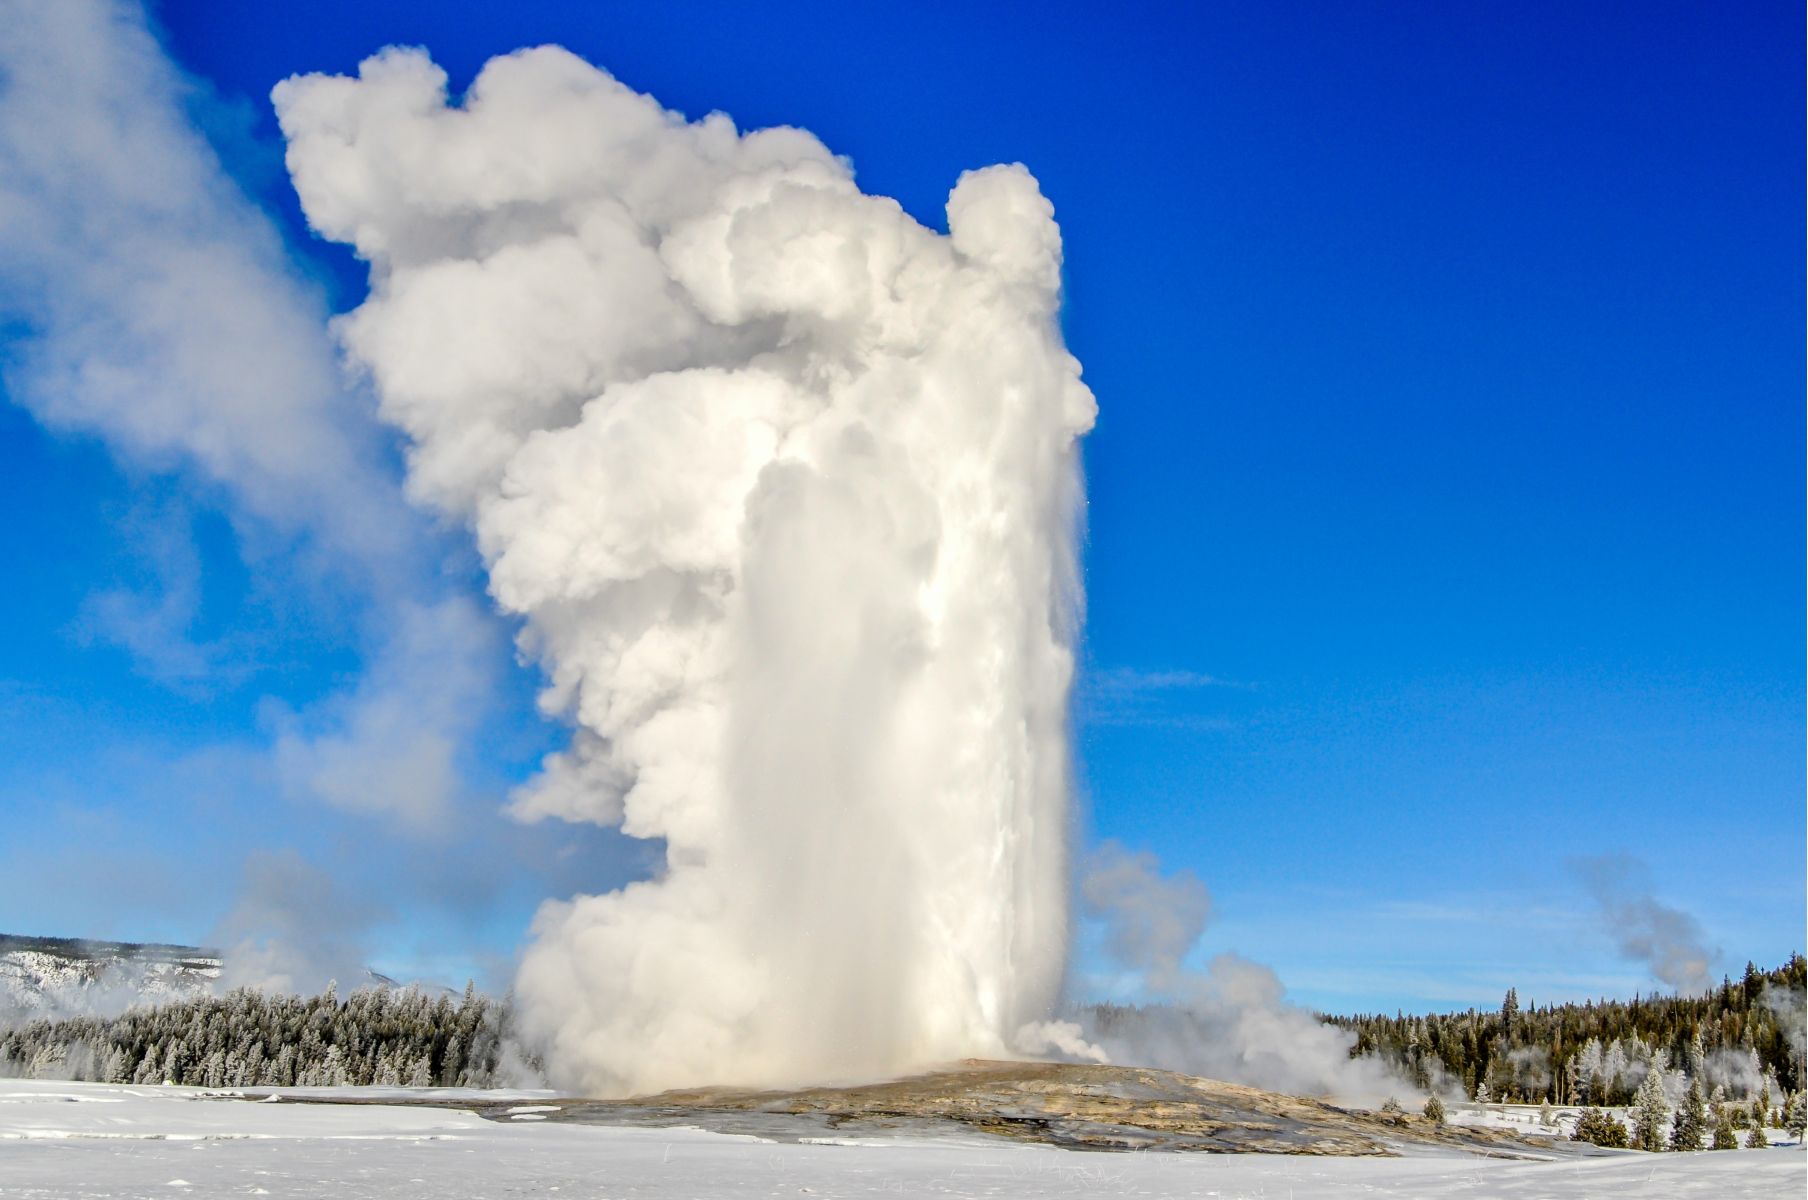 Old Faithful erupting in Yellowstone National Park